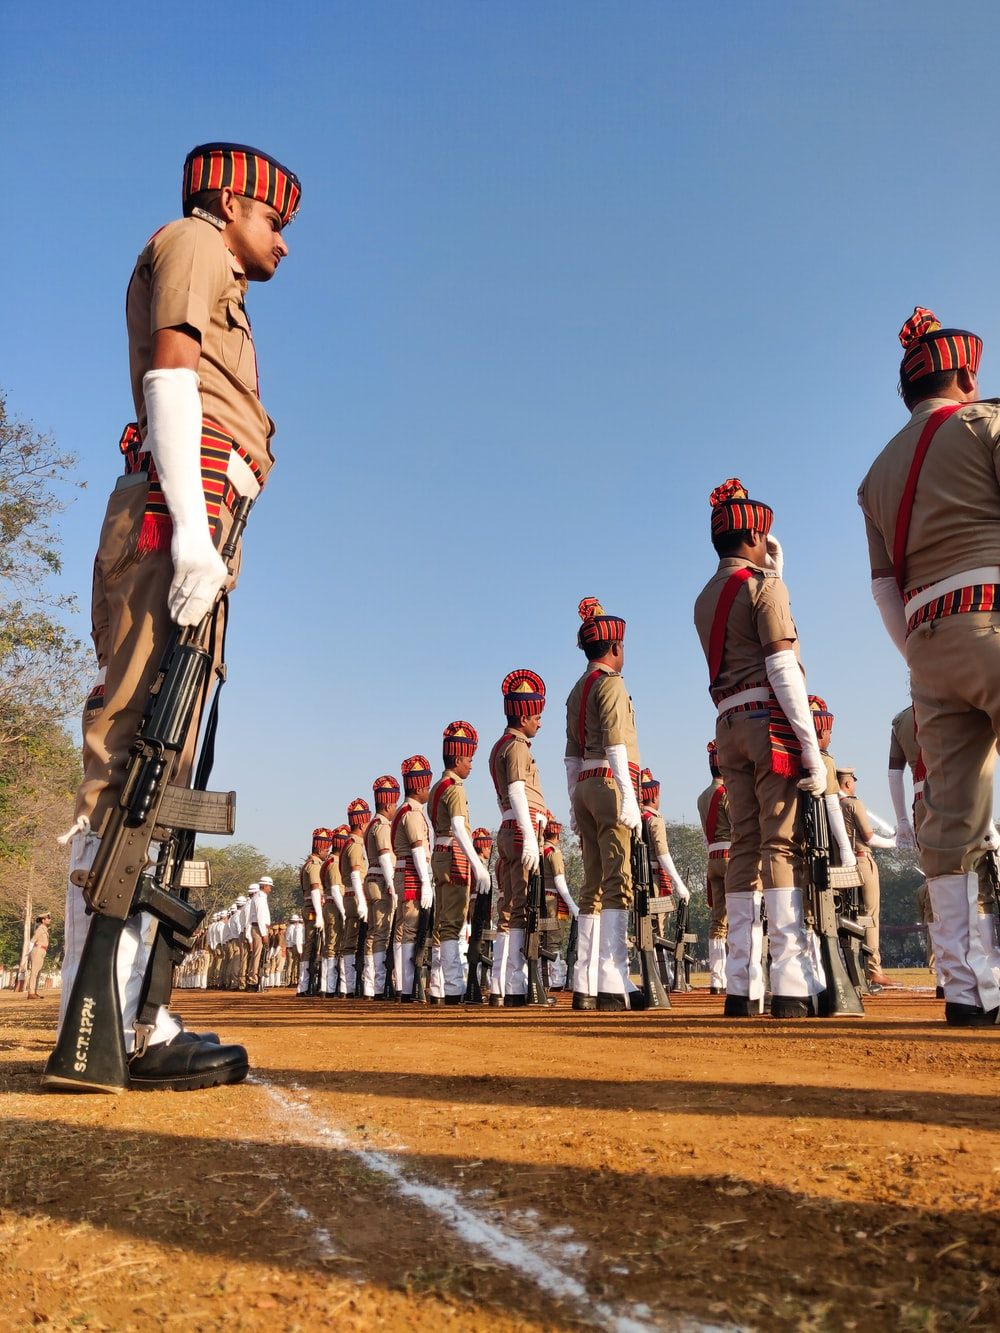 people in brown and white uniform holding airsoft rifle during daytime